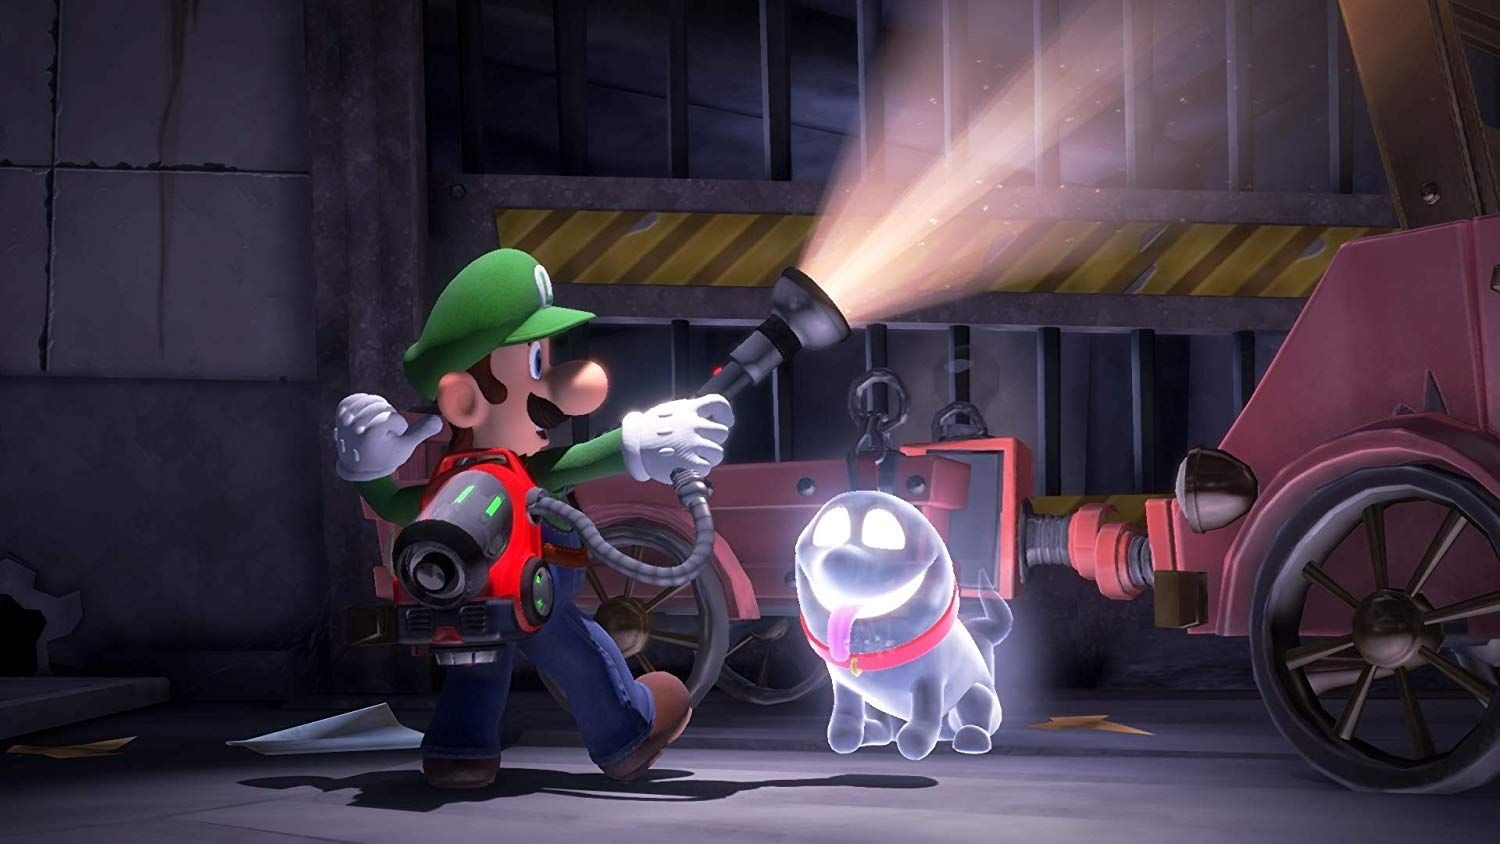 Luigi's Mansion 3 (Nintendo Switch) - 6